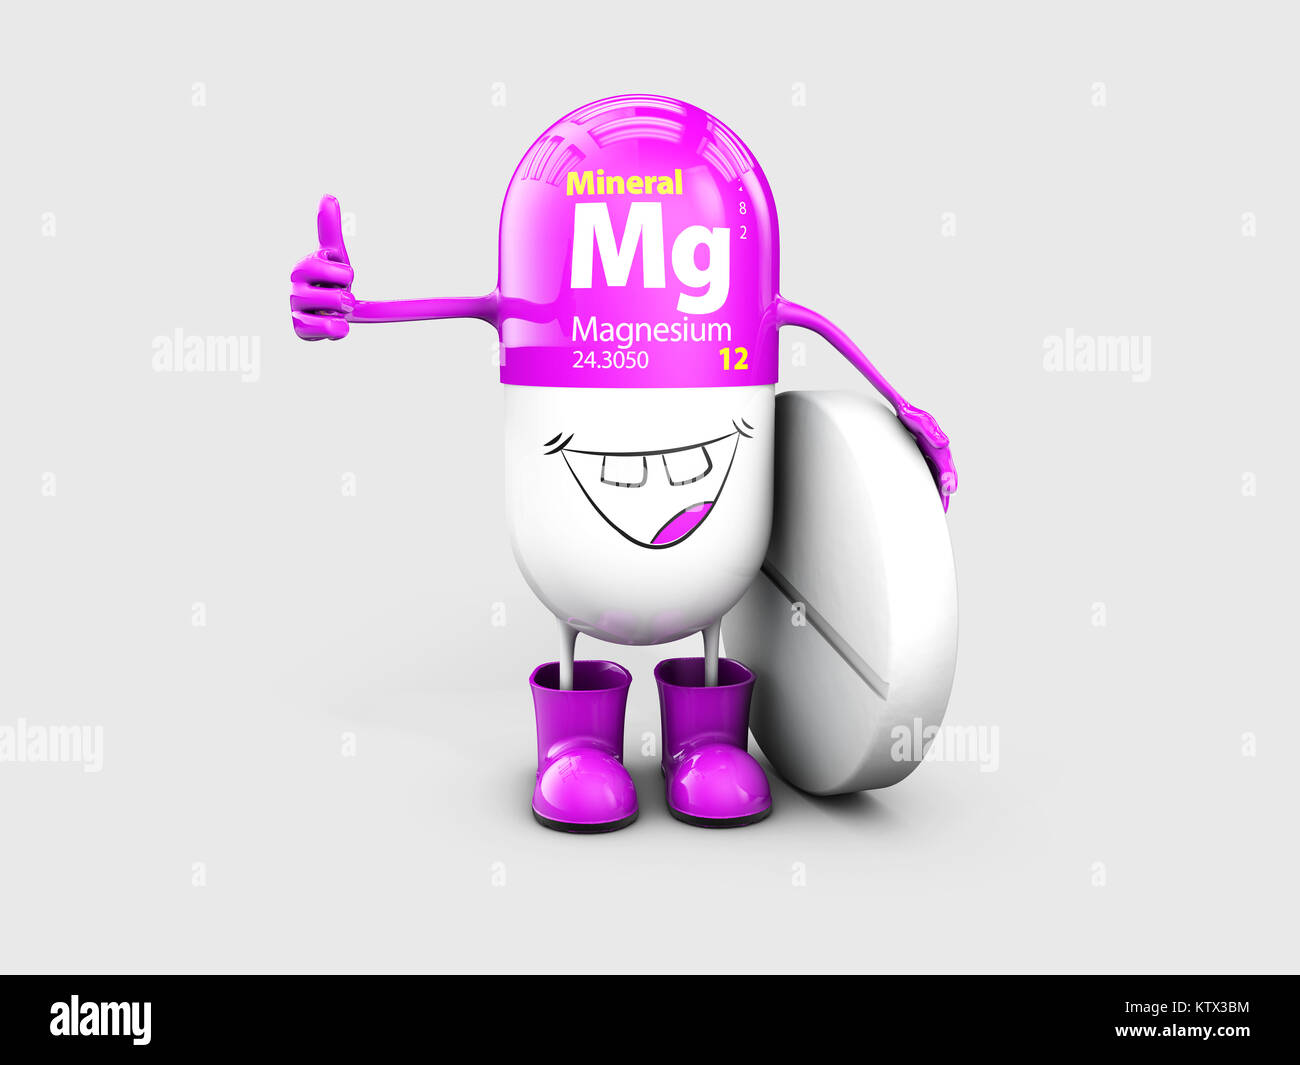 hight resolution of mineral mg magnesium shining pill cartoon capsule icon 3d illustration stock image